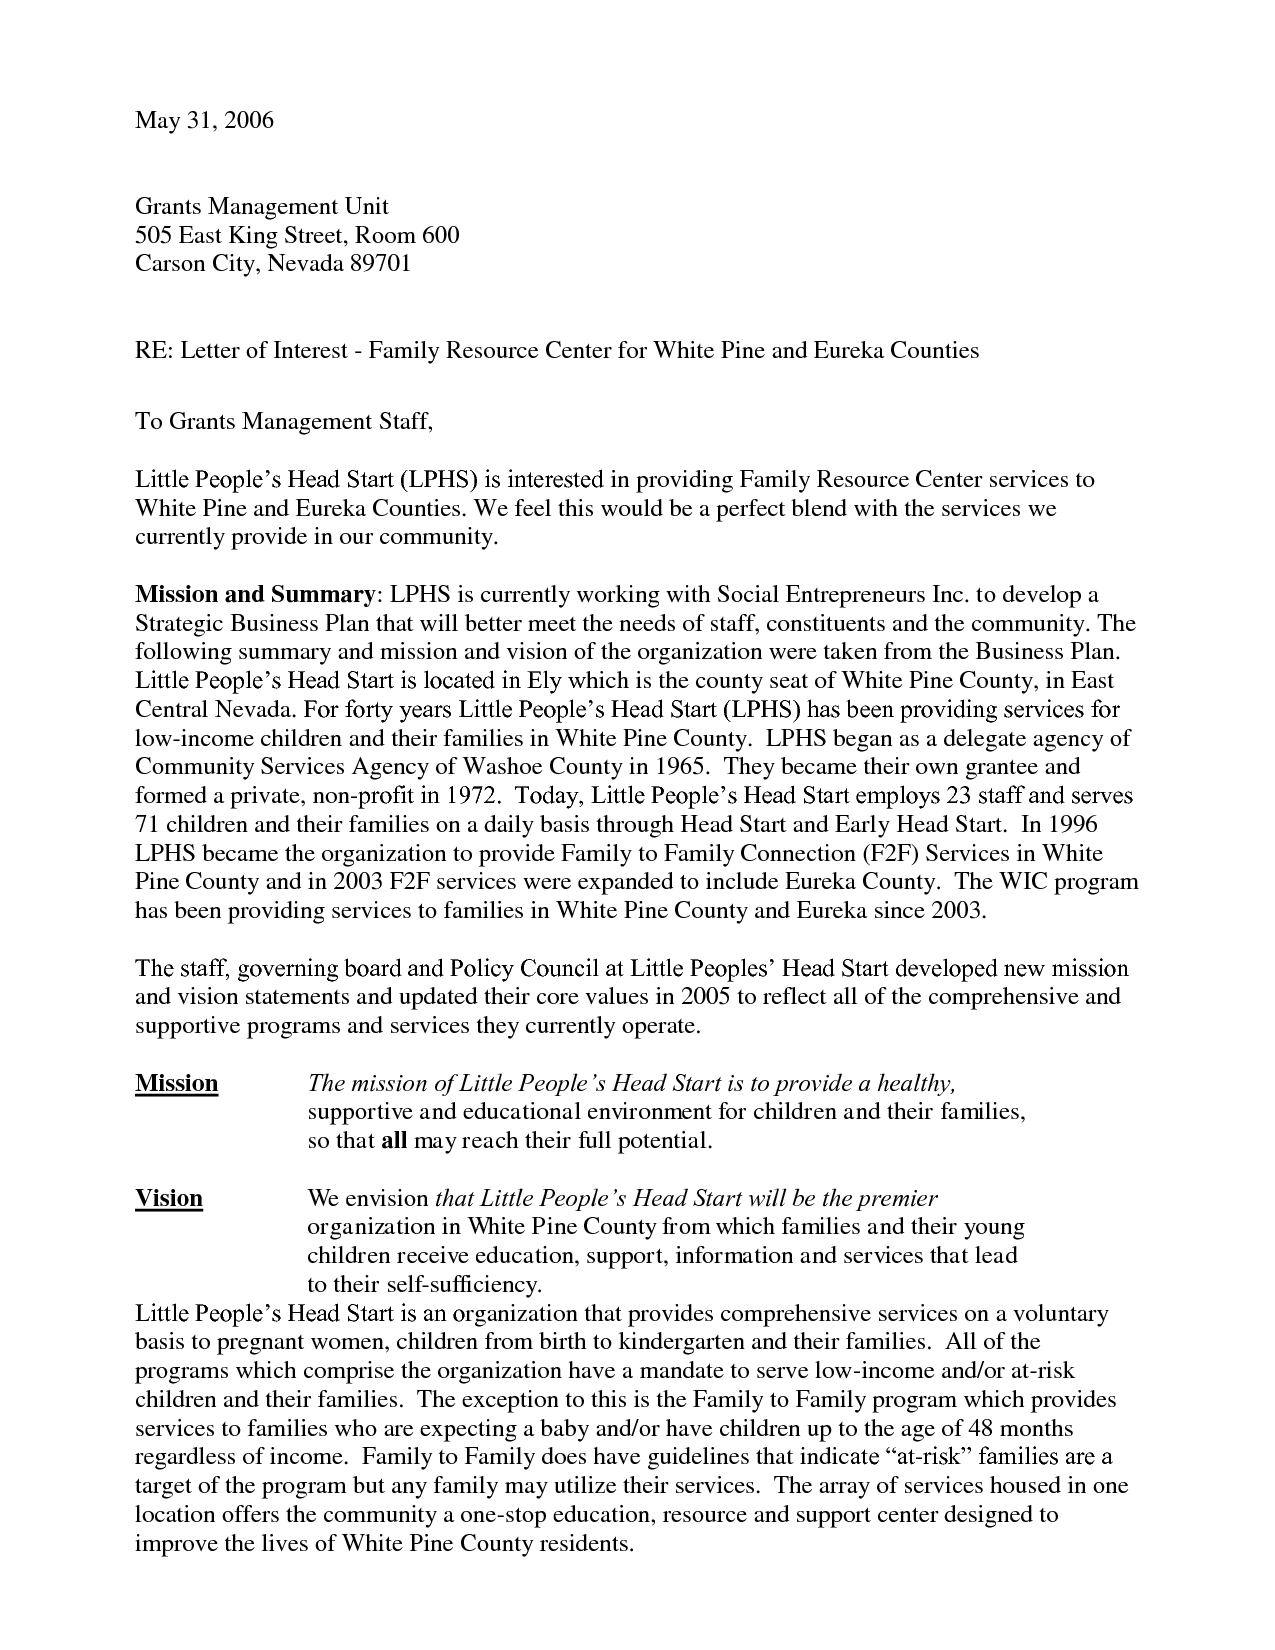 how to write a letter of interest for a job cover letter of ...